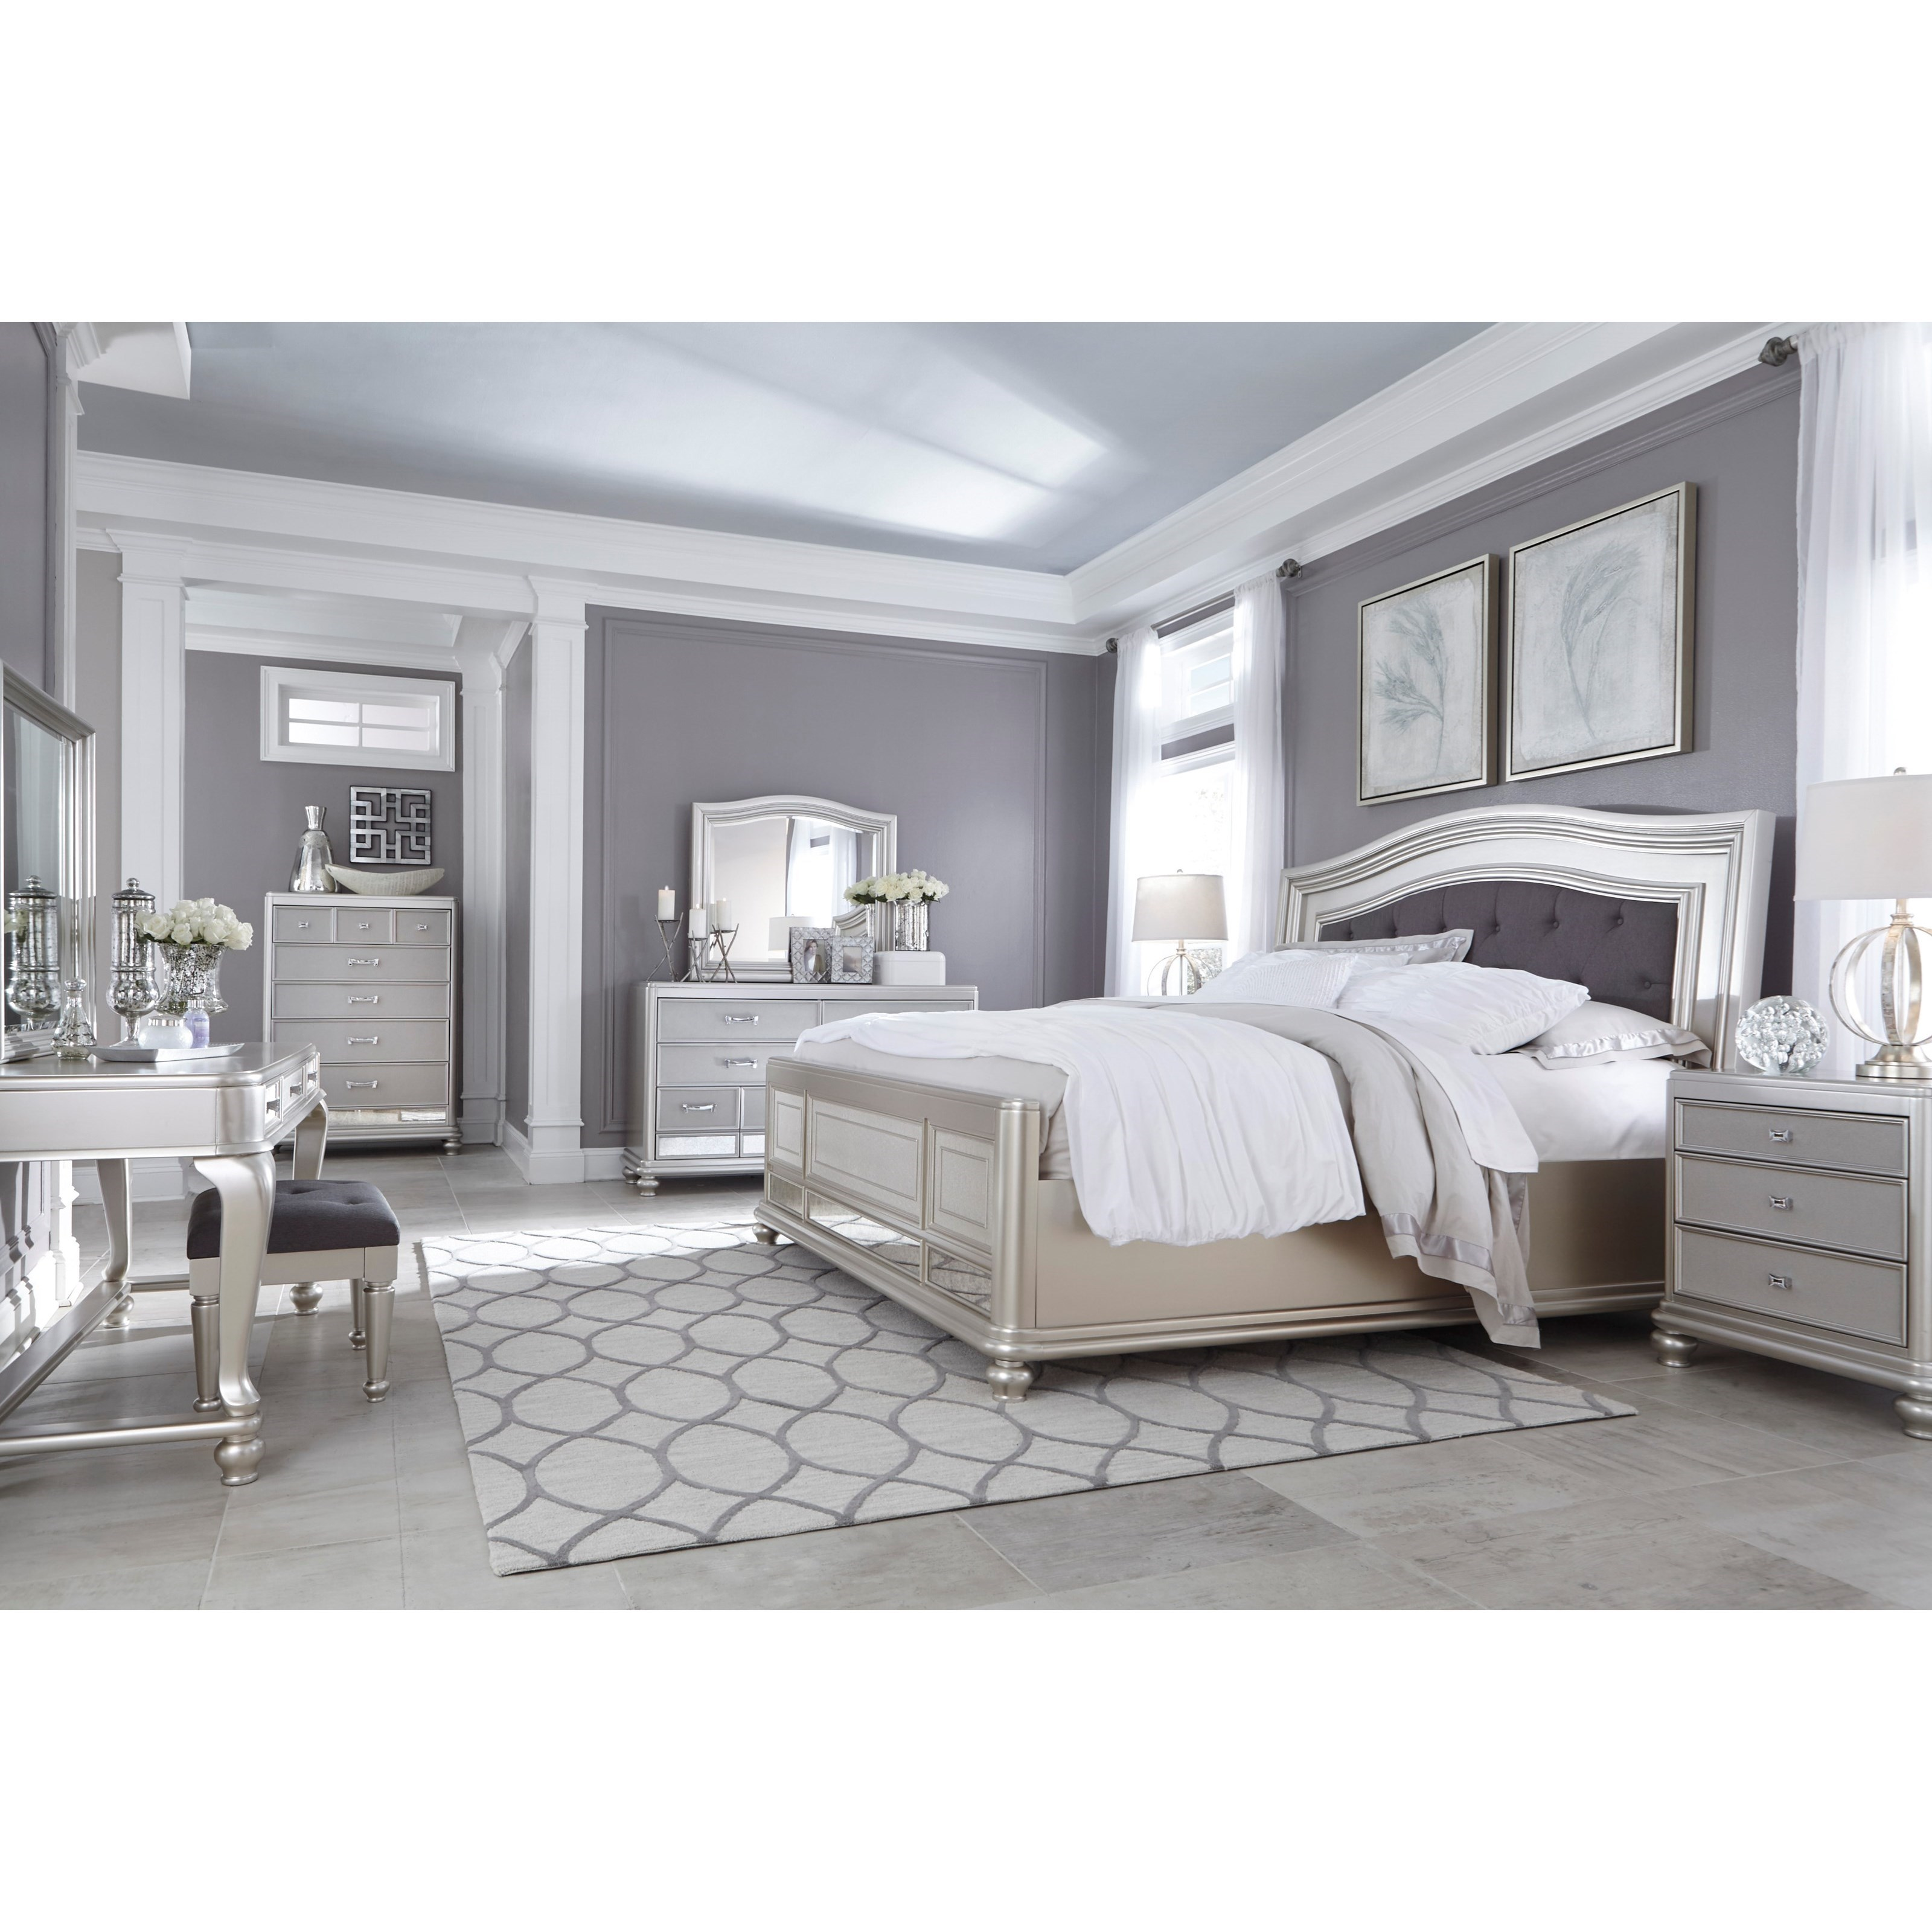 Signature design by ashley coralayne king bedroom group for Bedroom furniture groups